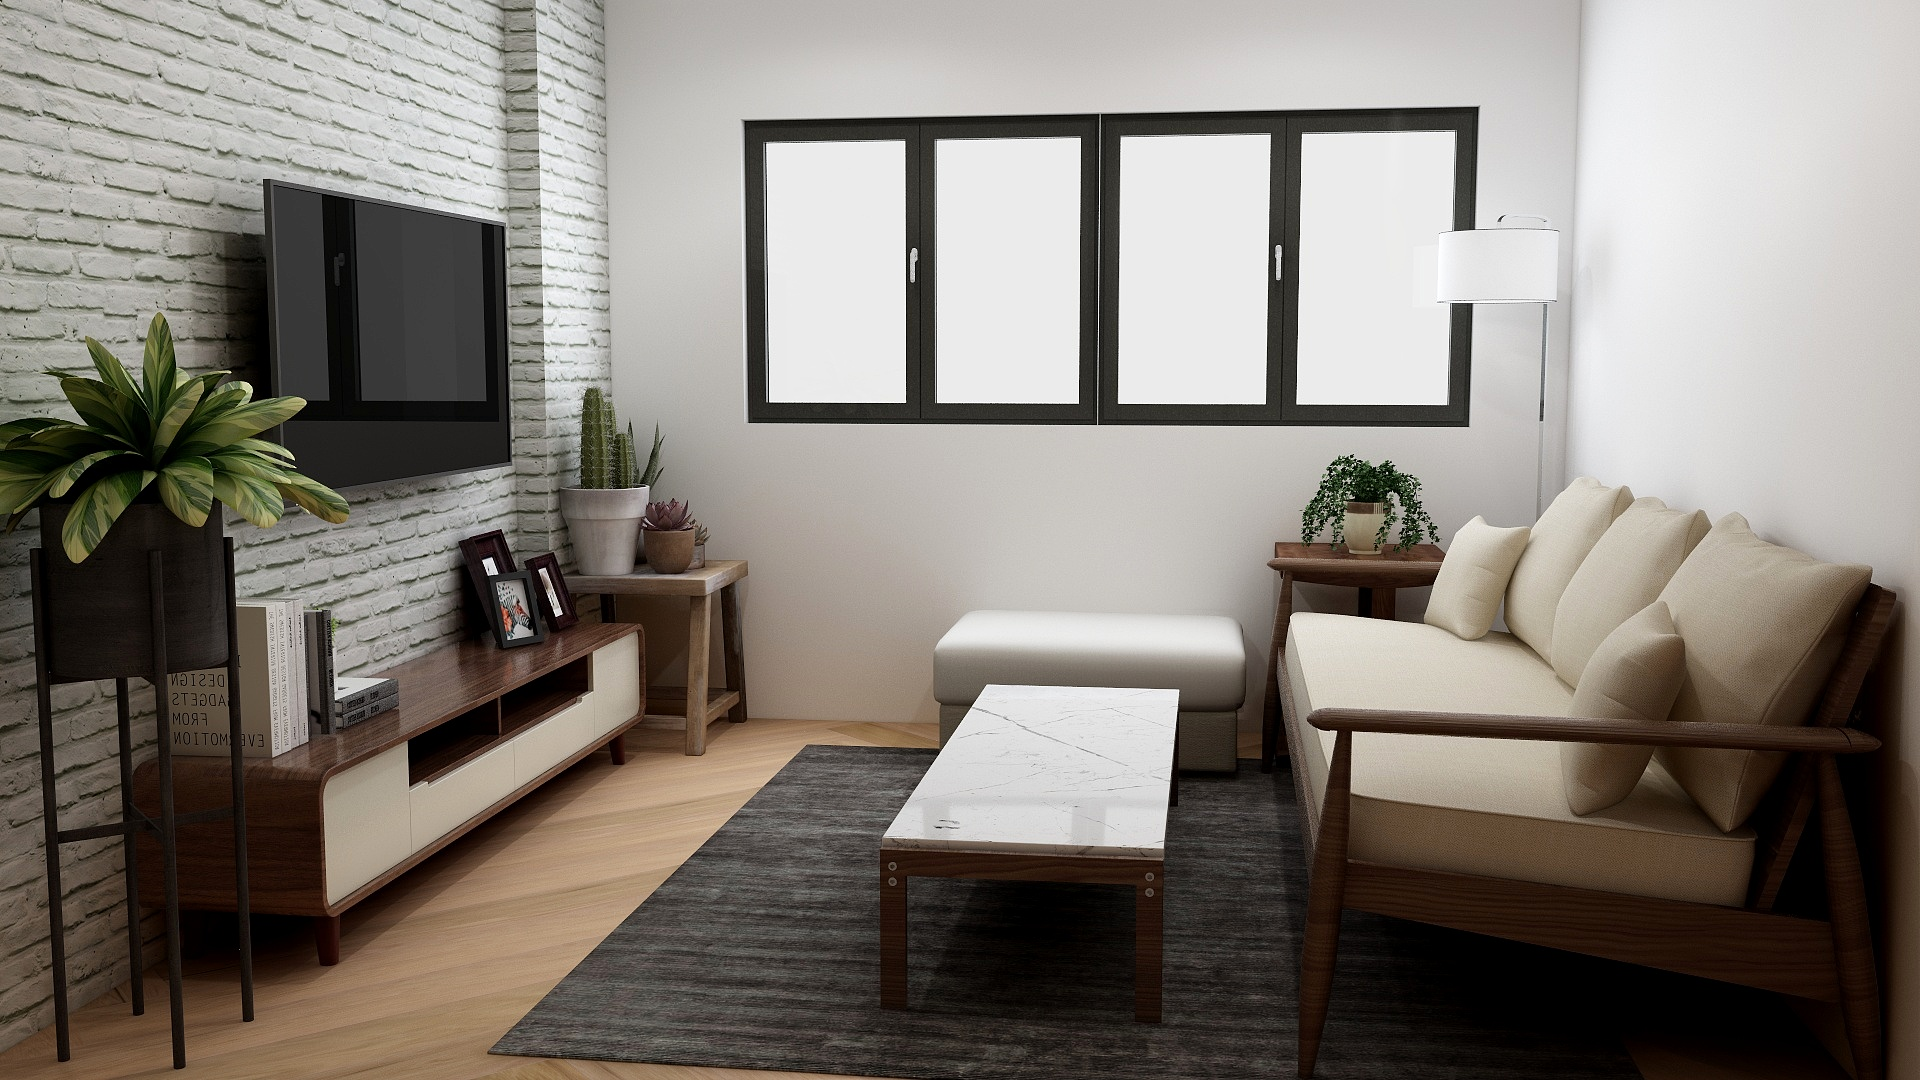 Contemporary living room utilizing MCM furniture and color palette